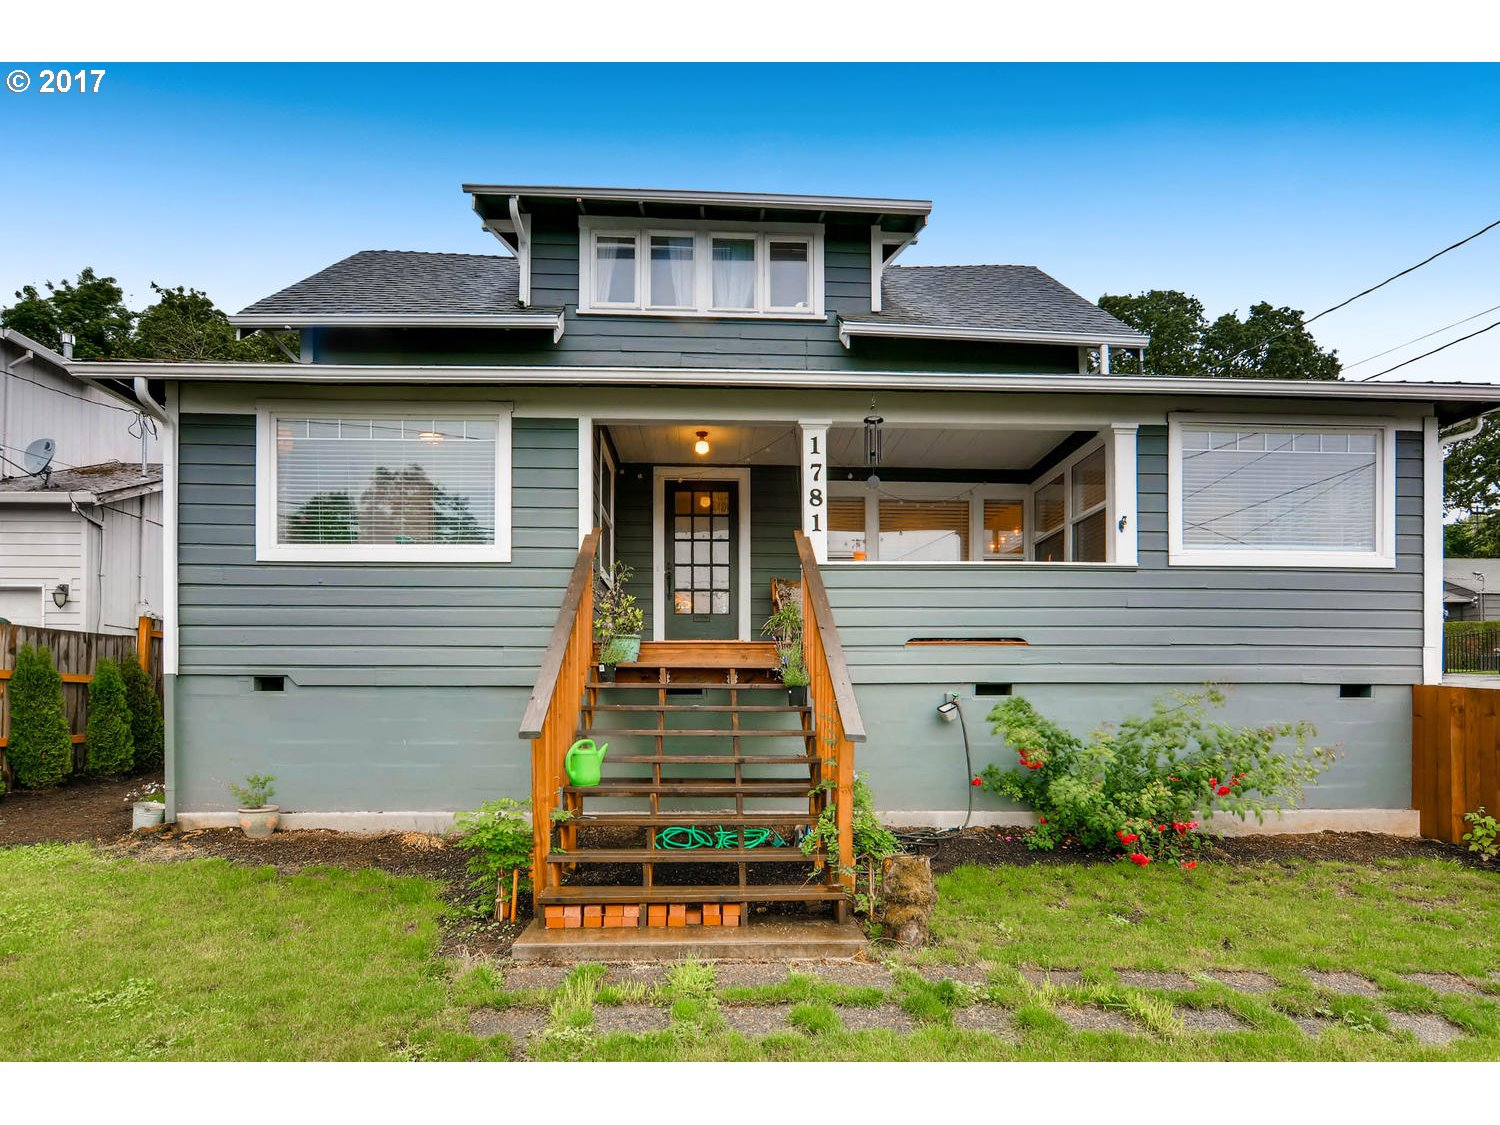 1781 SUNSET AVE West Linn, OR 97068 - MLS #: 17524370